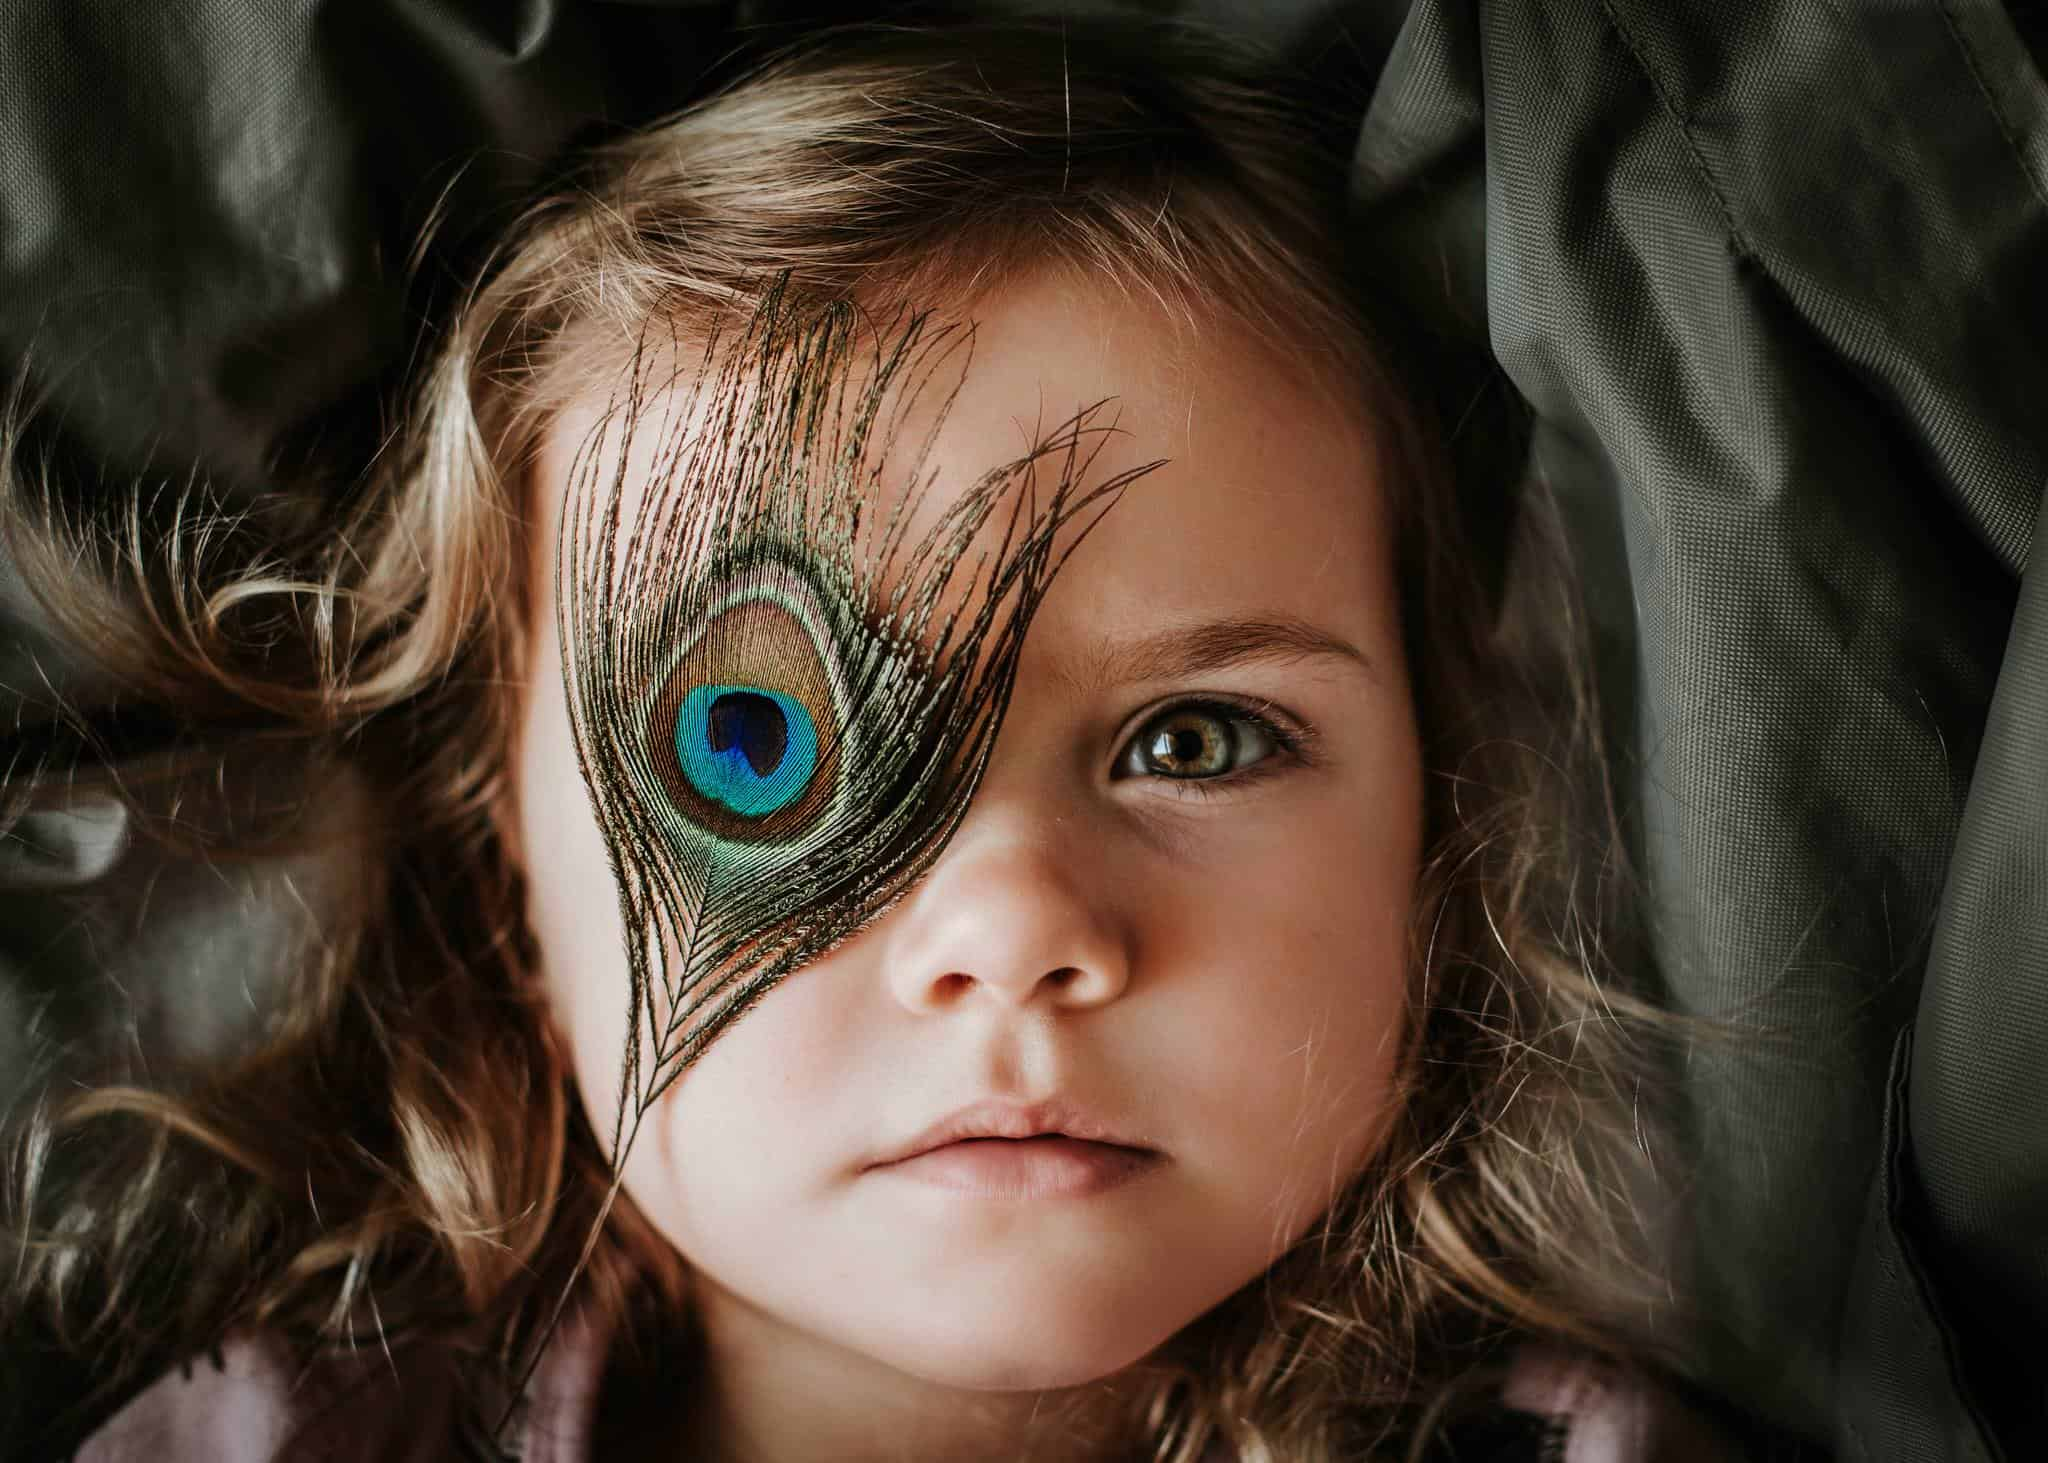 Kids Portrait of a young girl with a peacock feather in fron of her eye